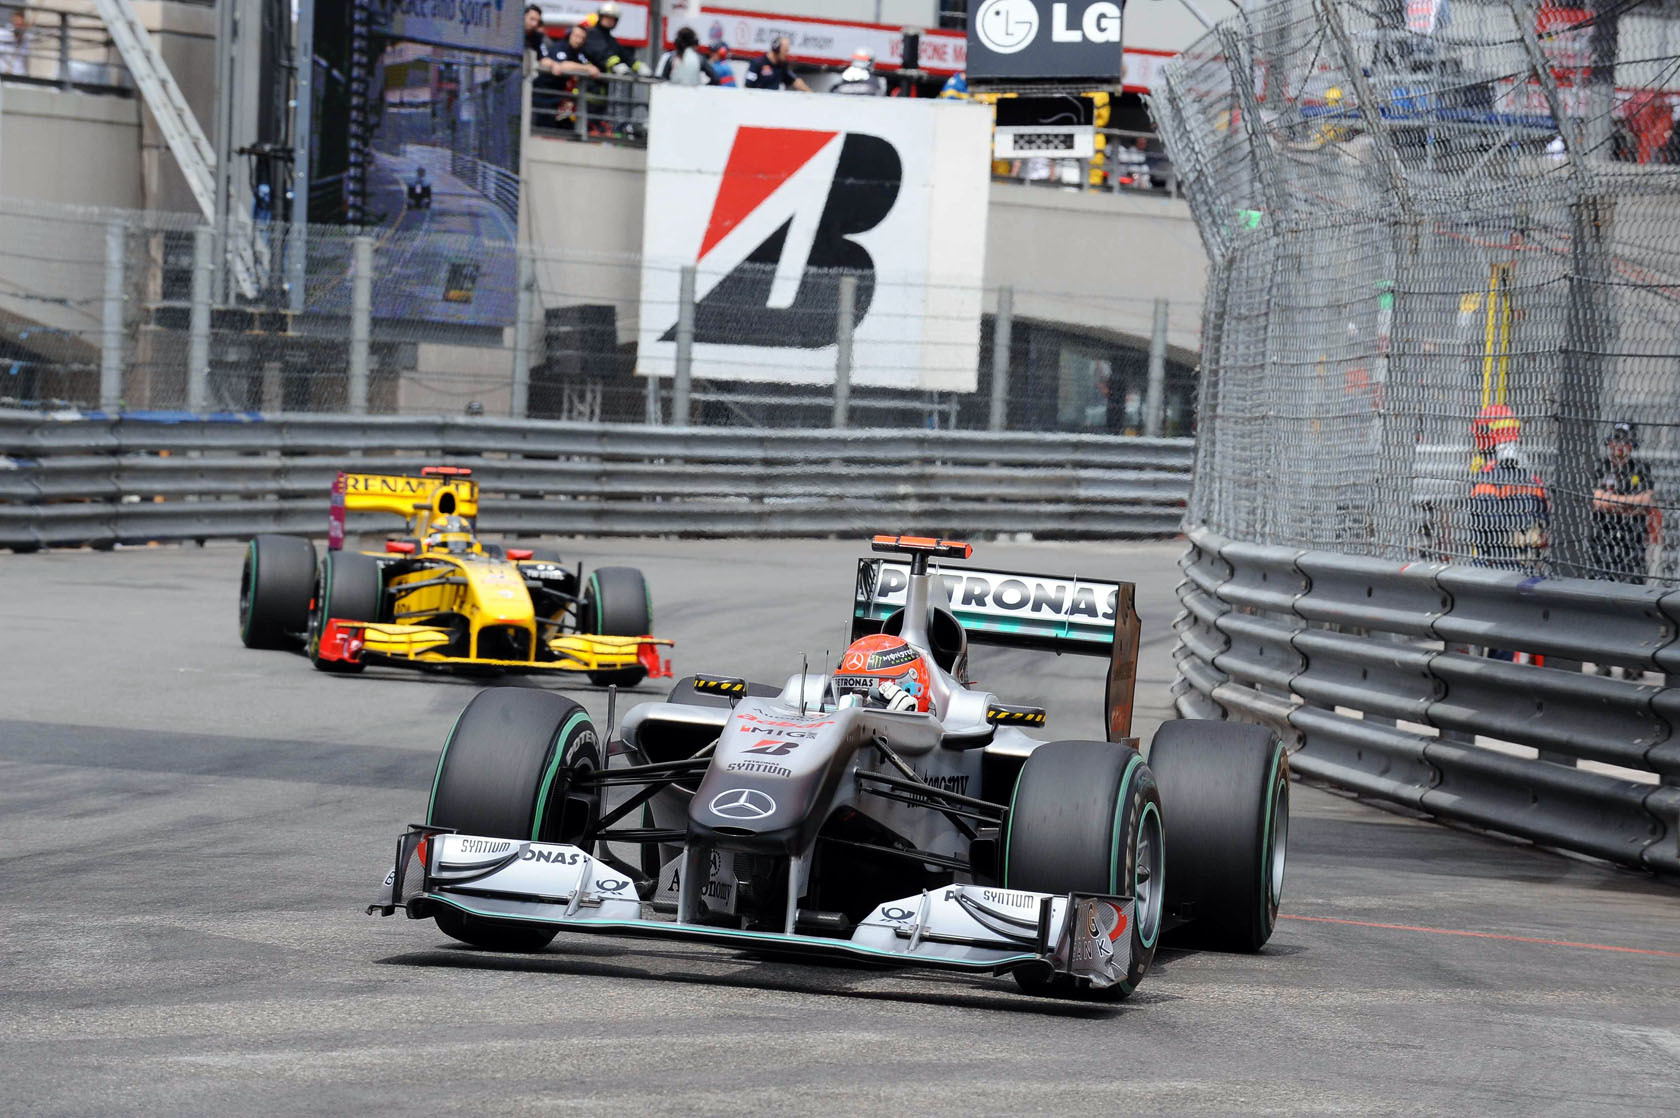 formula one Renault Mercedes-Benz HD Wallpaper